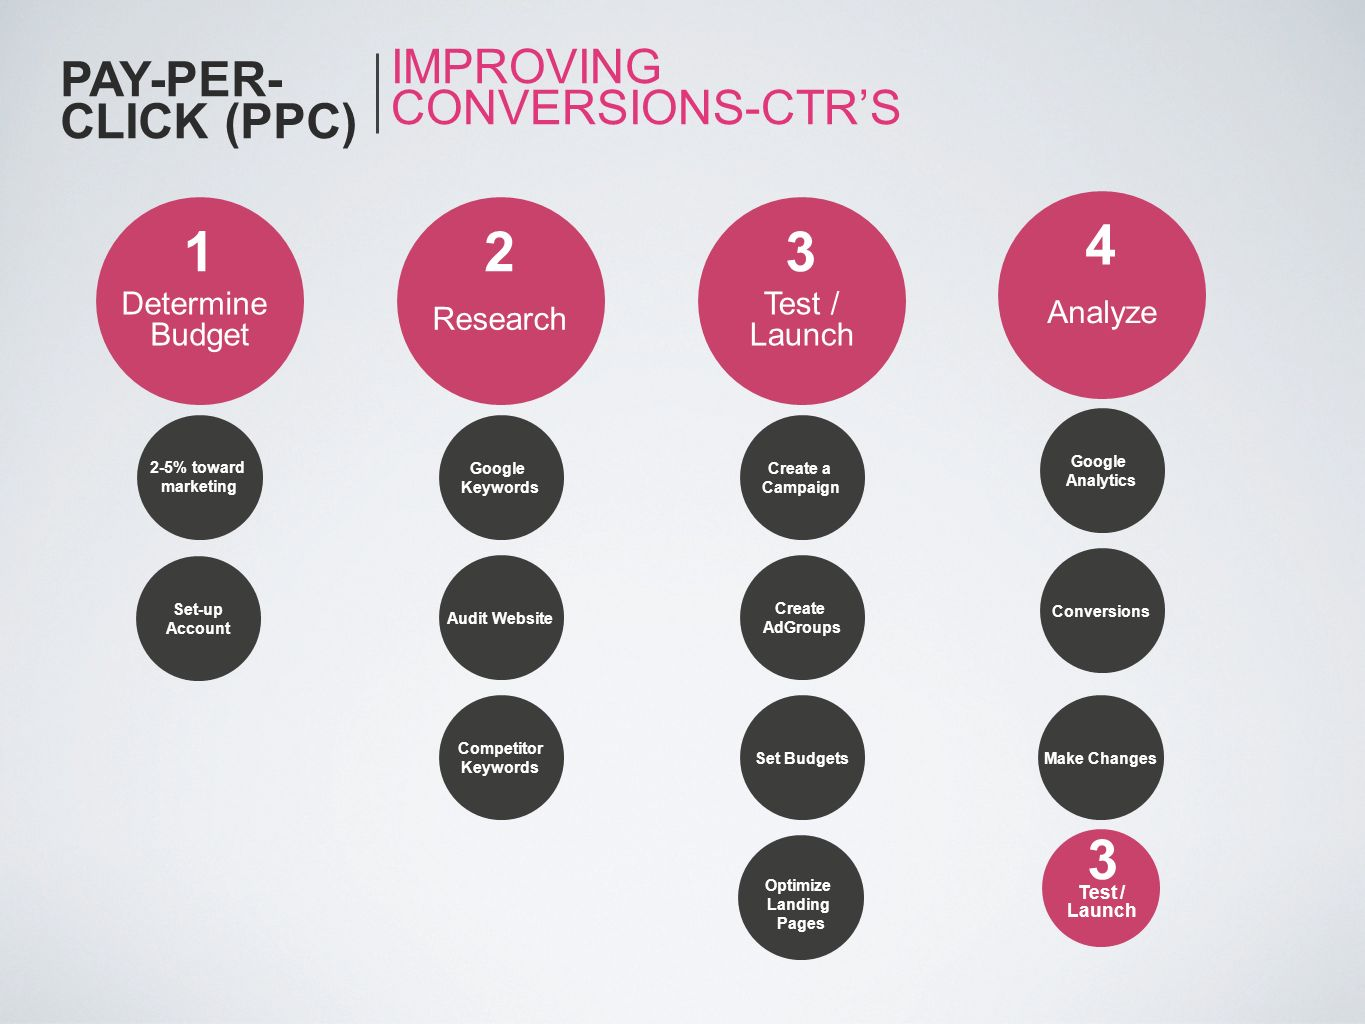 4 1 2 3 3 PAY-PER-CLICK (PPC) IMPROVING CONVERSIONS-CTR'S Determine